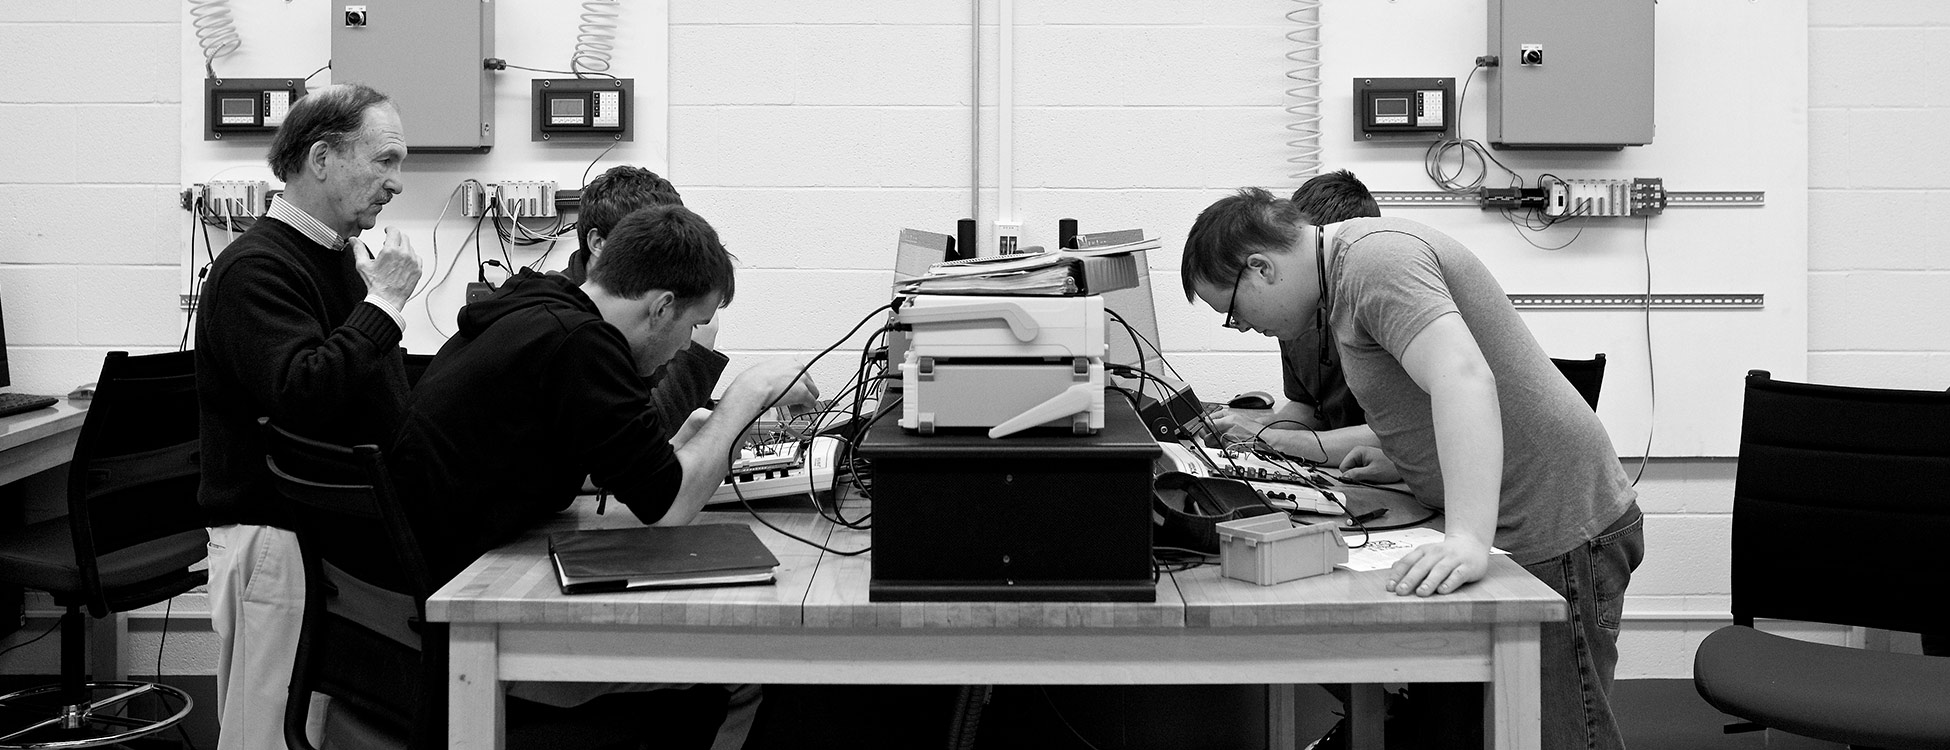 Electrical engineering, students in lab